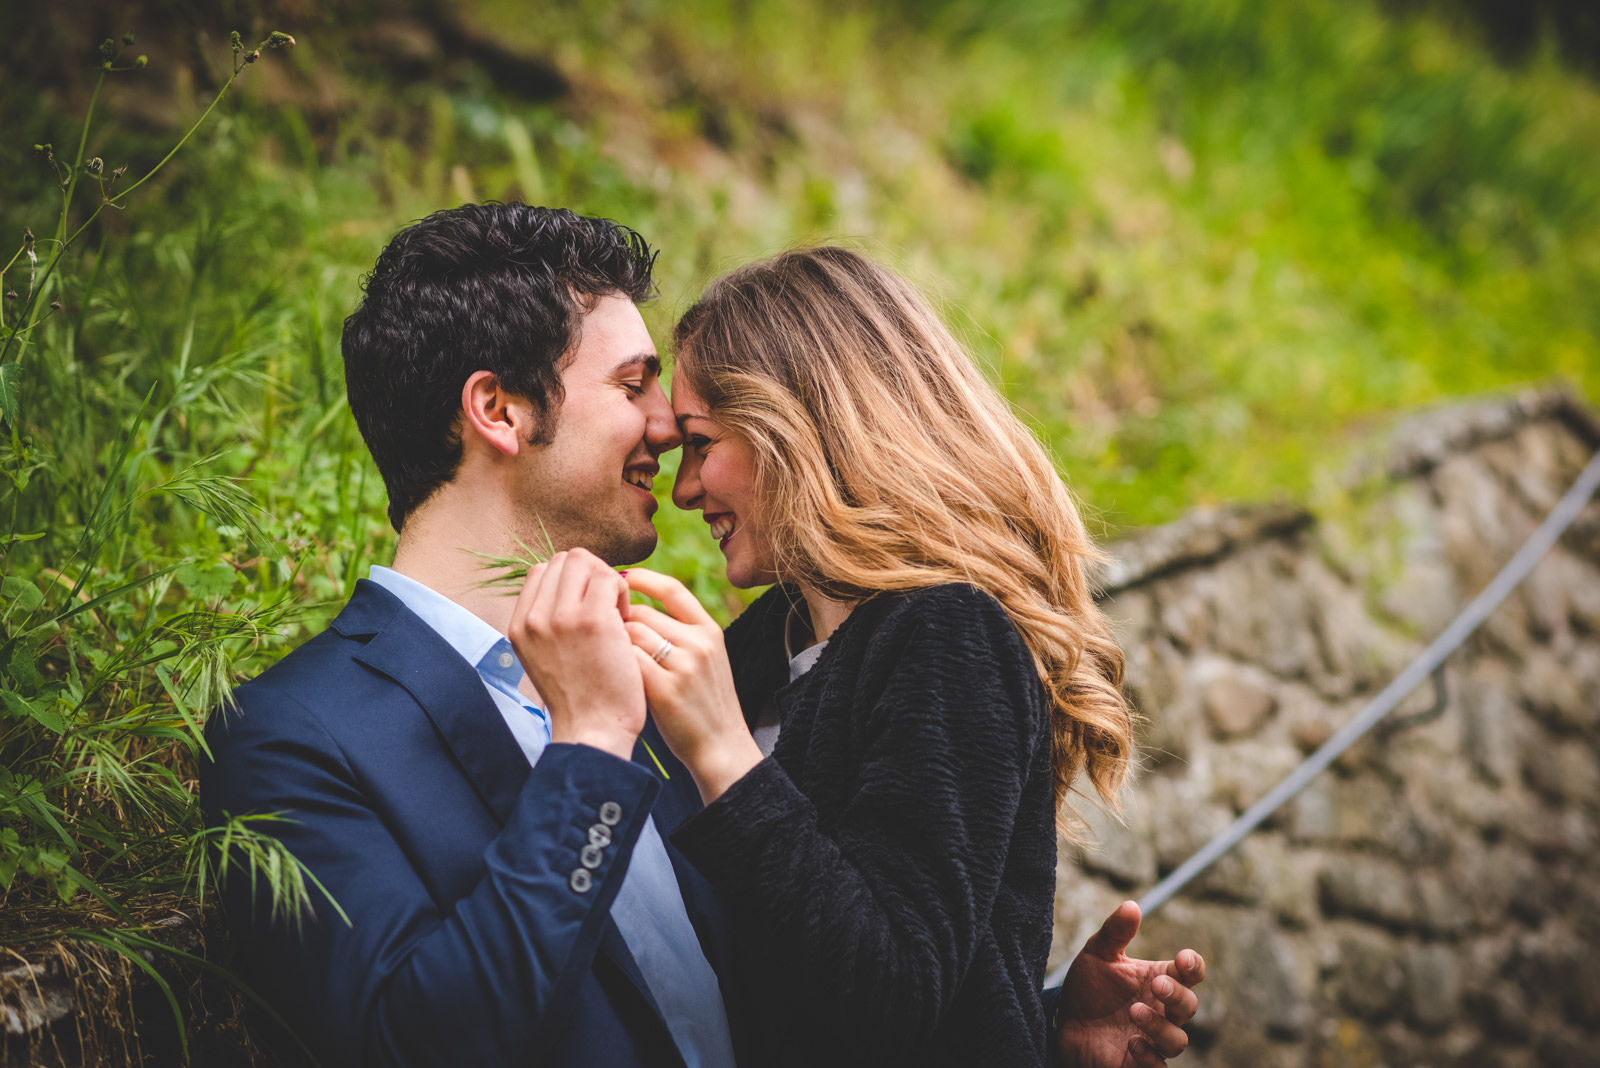 Couple Portraits Photographer Fiesole